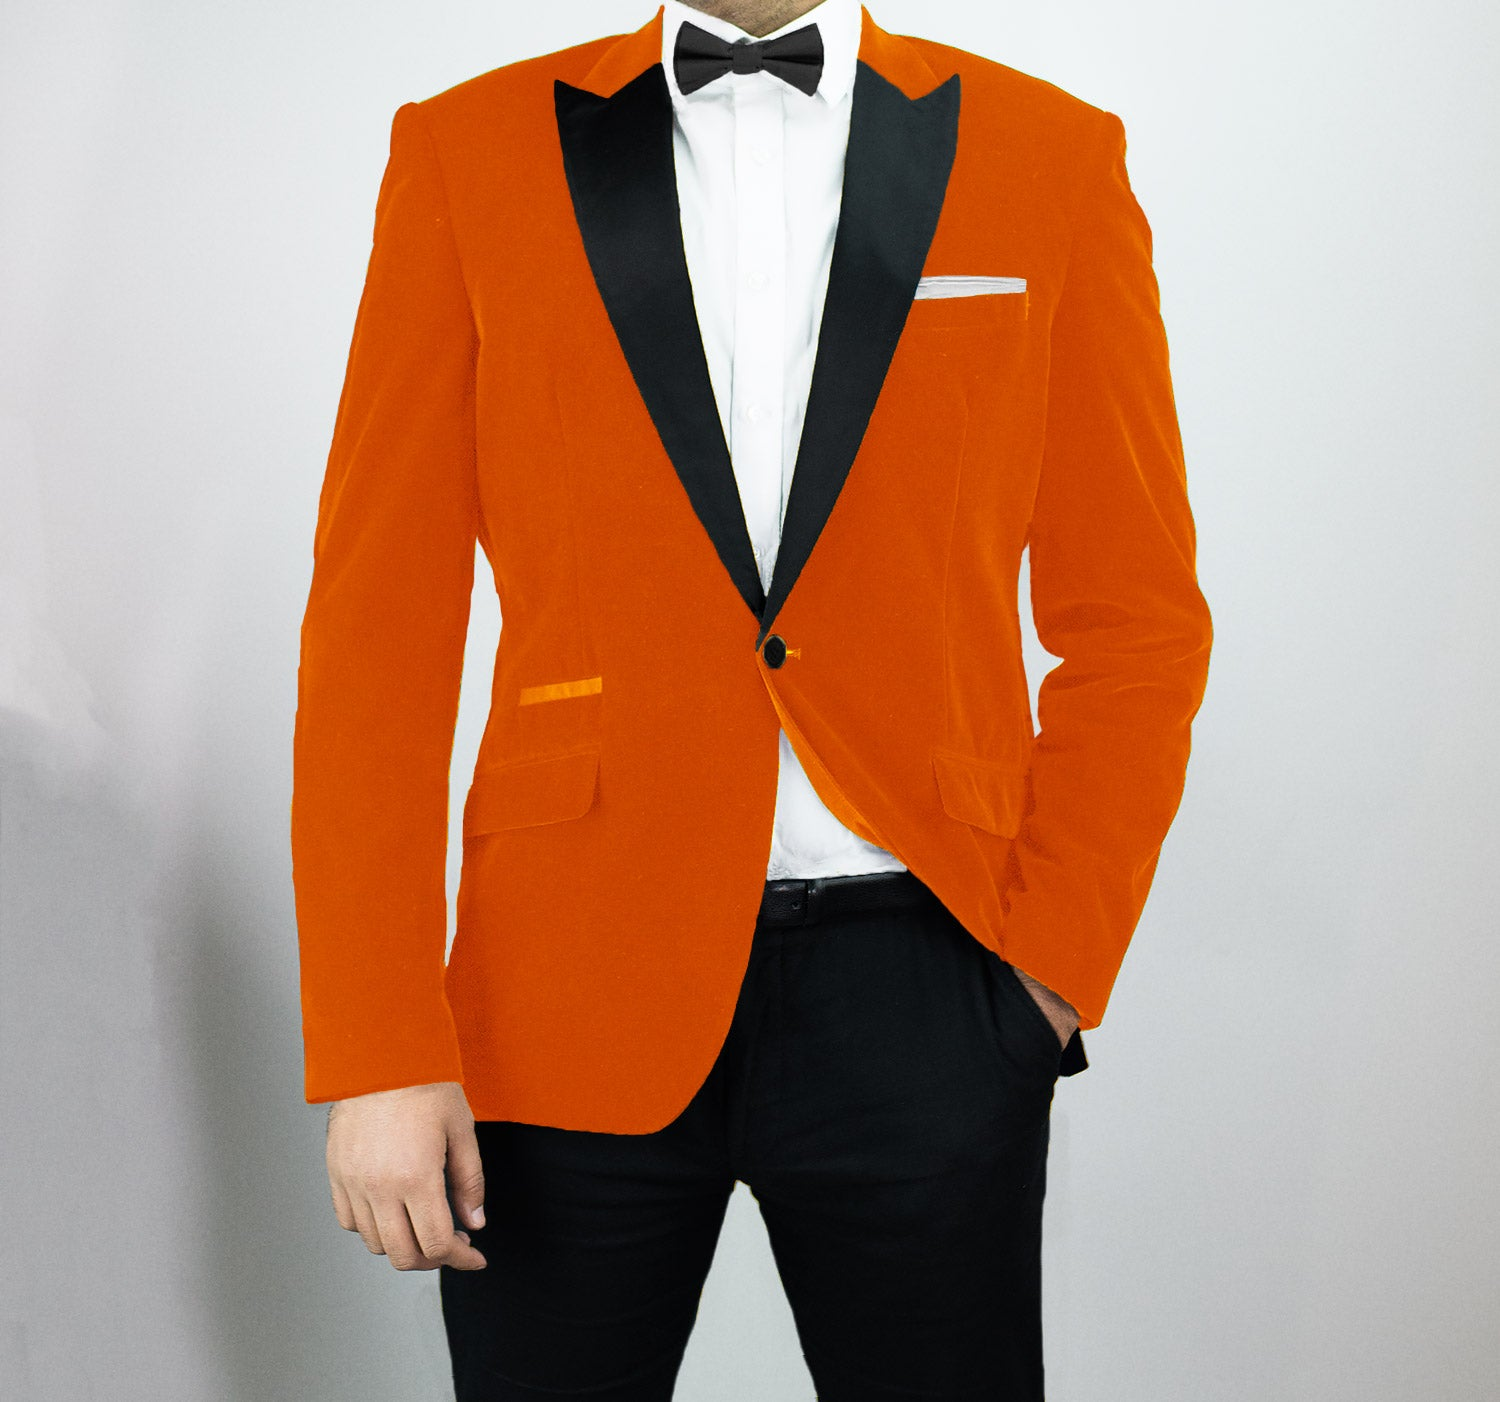 House Of Cavani Orange Velvet Blazer Kingsman